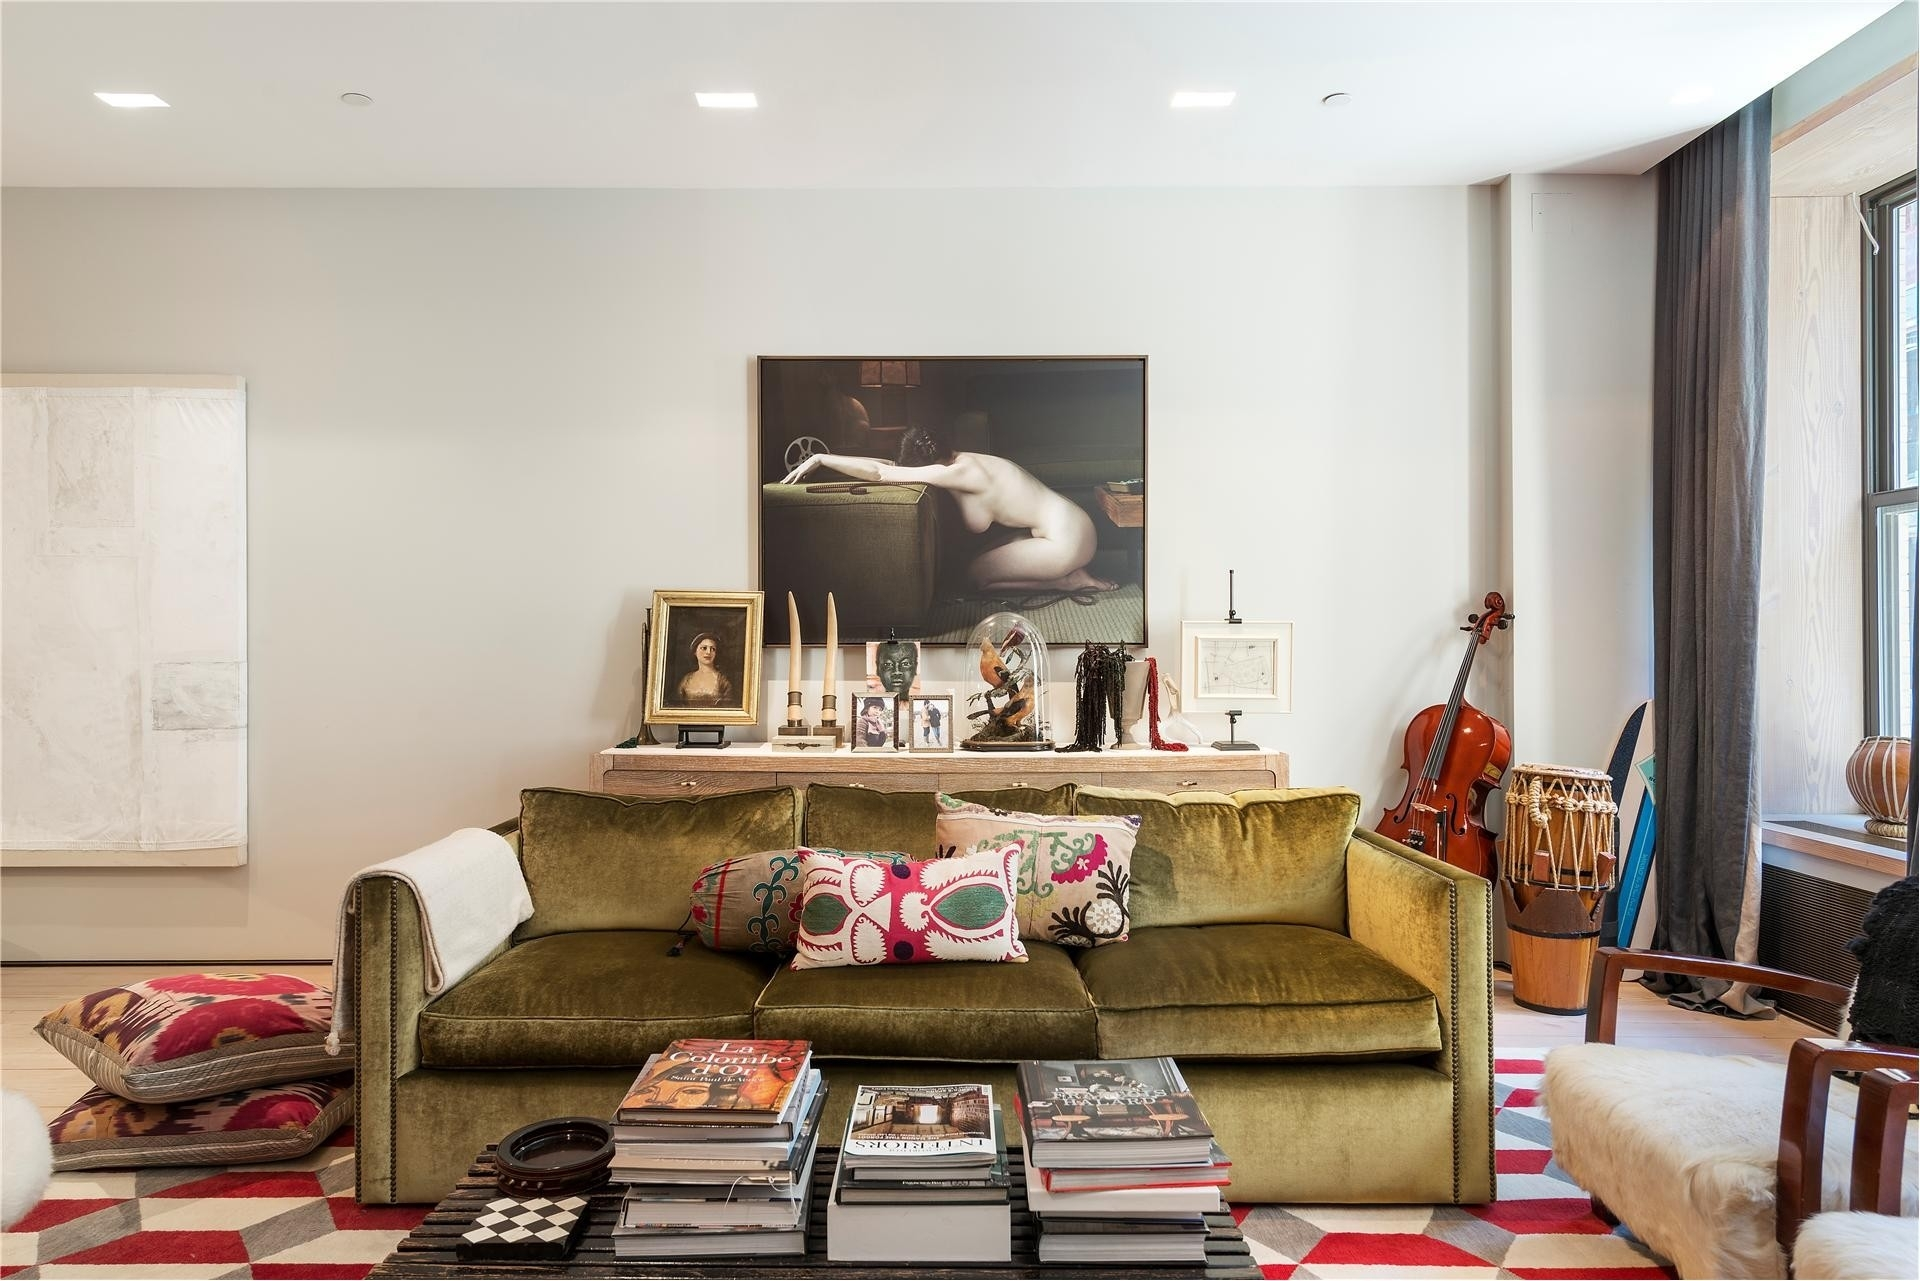 Property at 45 Crosby St, 3S New York